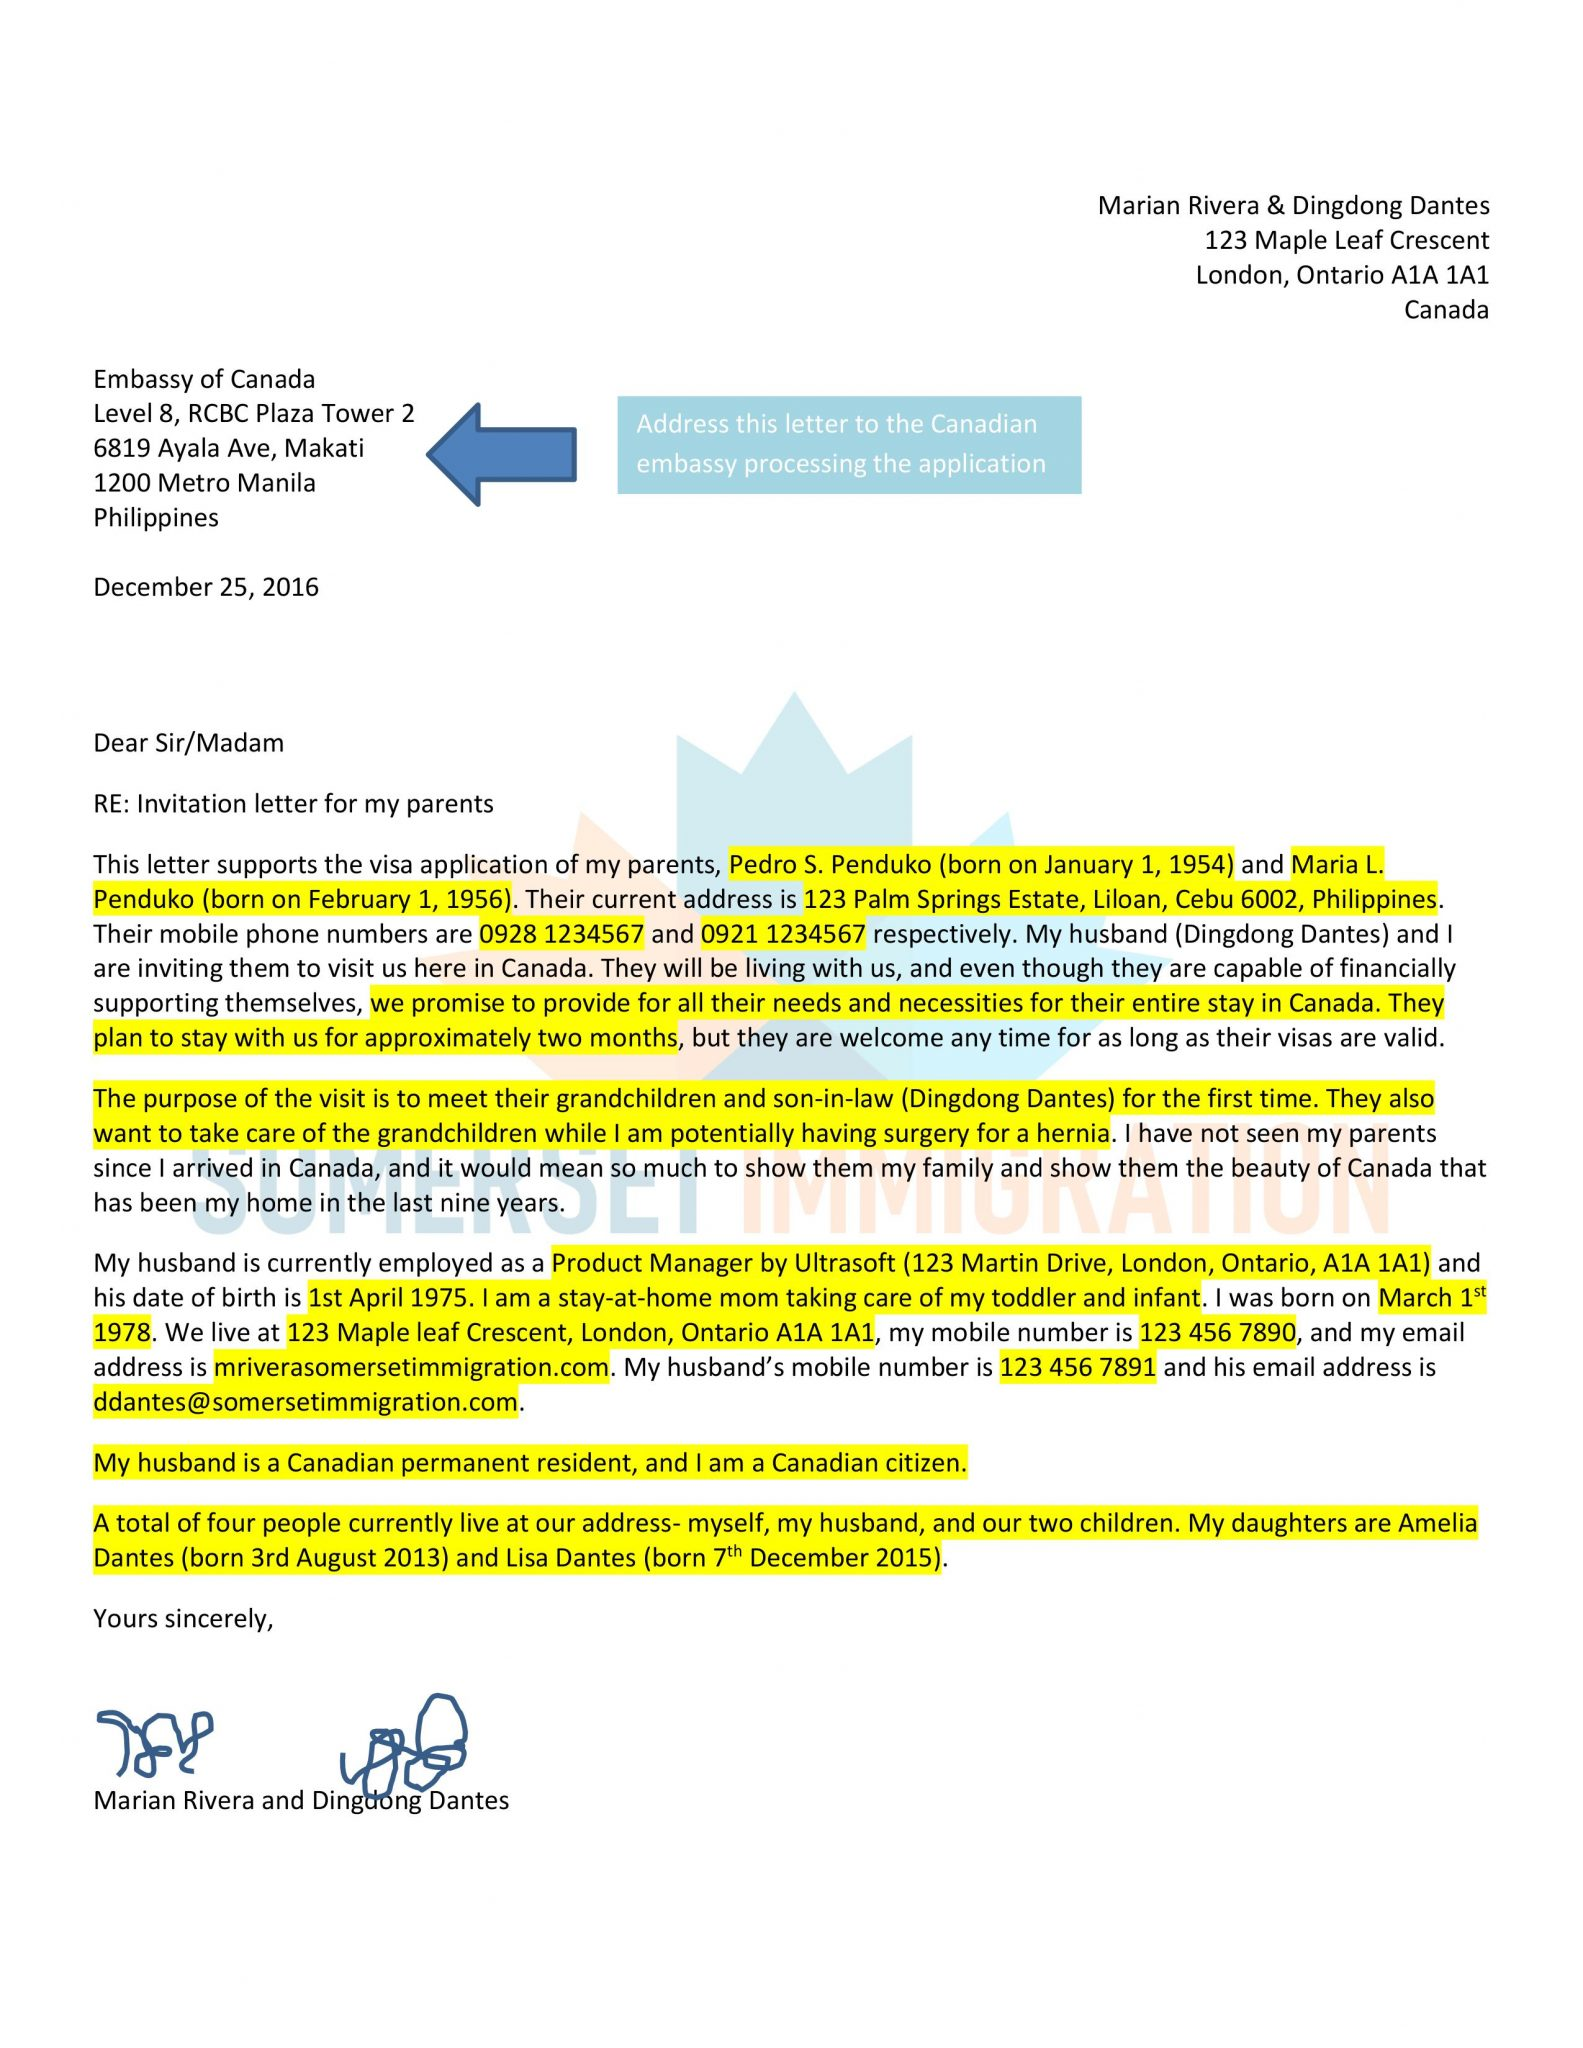 Sample Letter Of Invitation For Super Visa